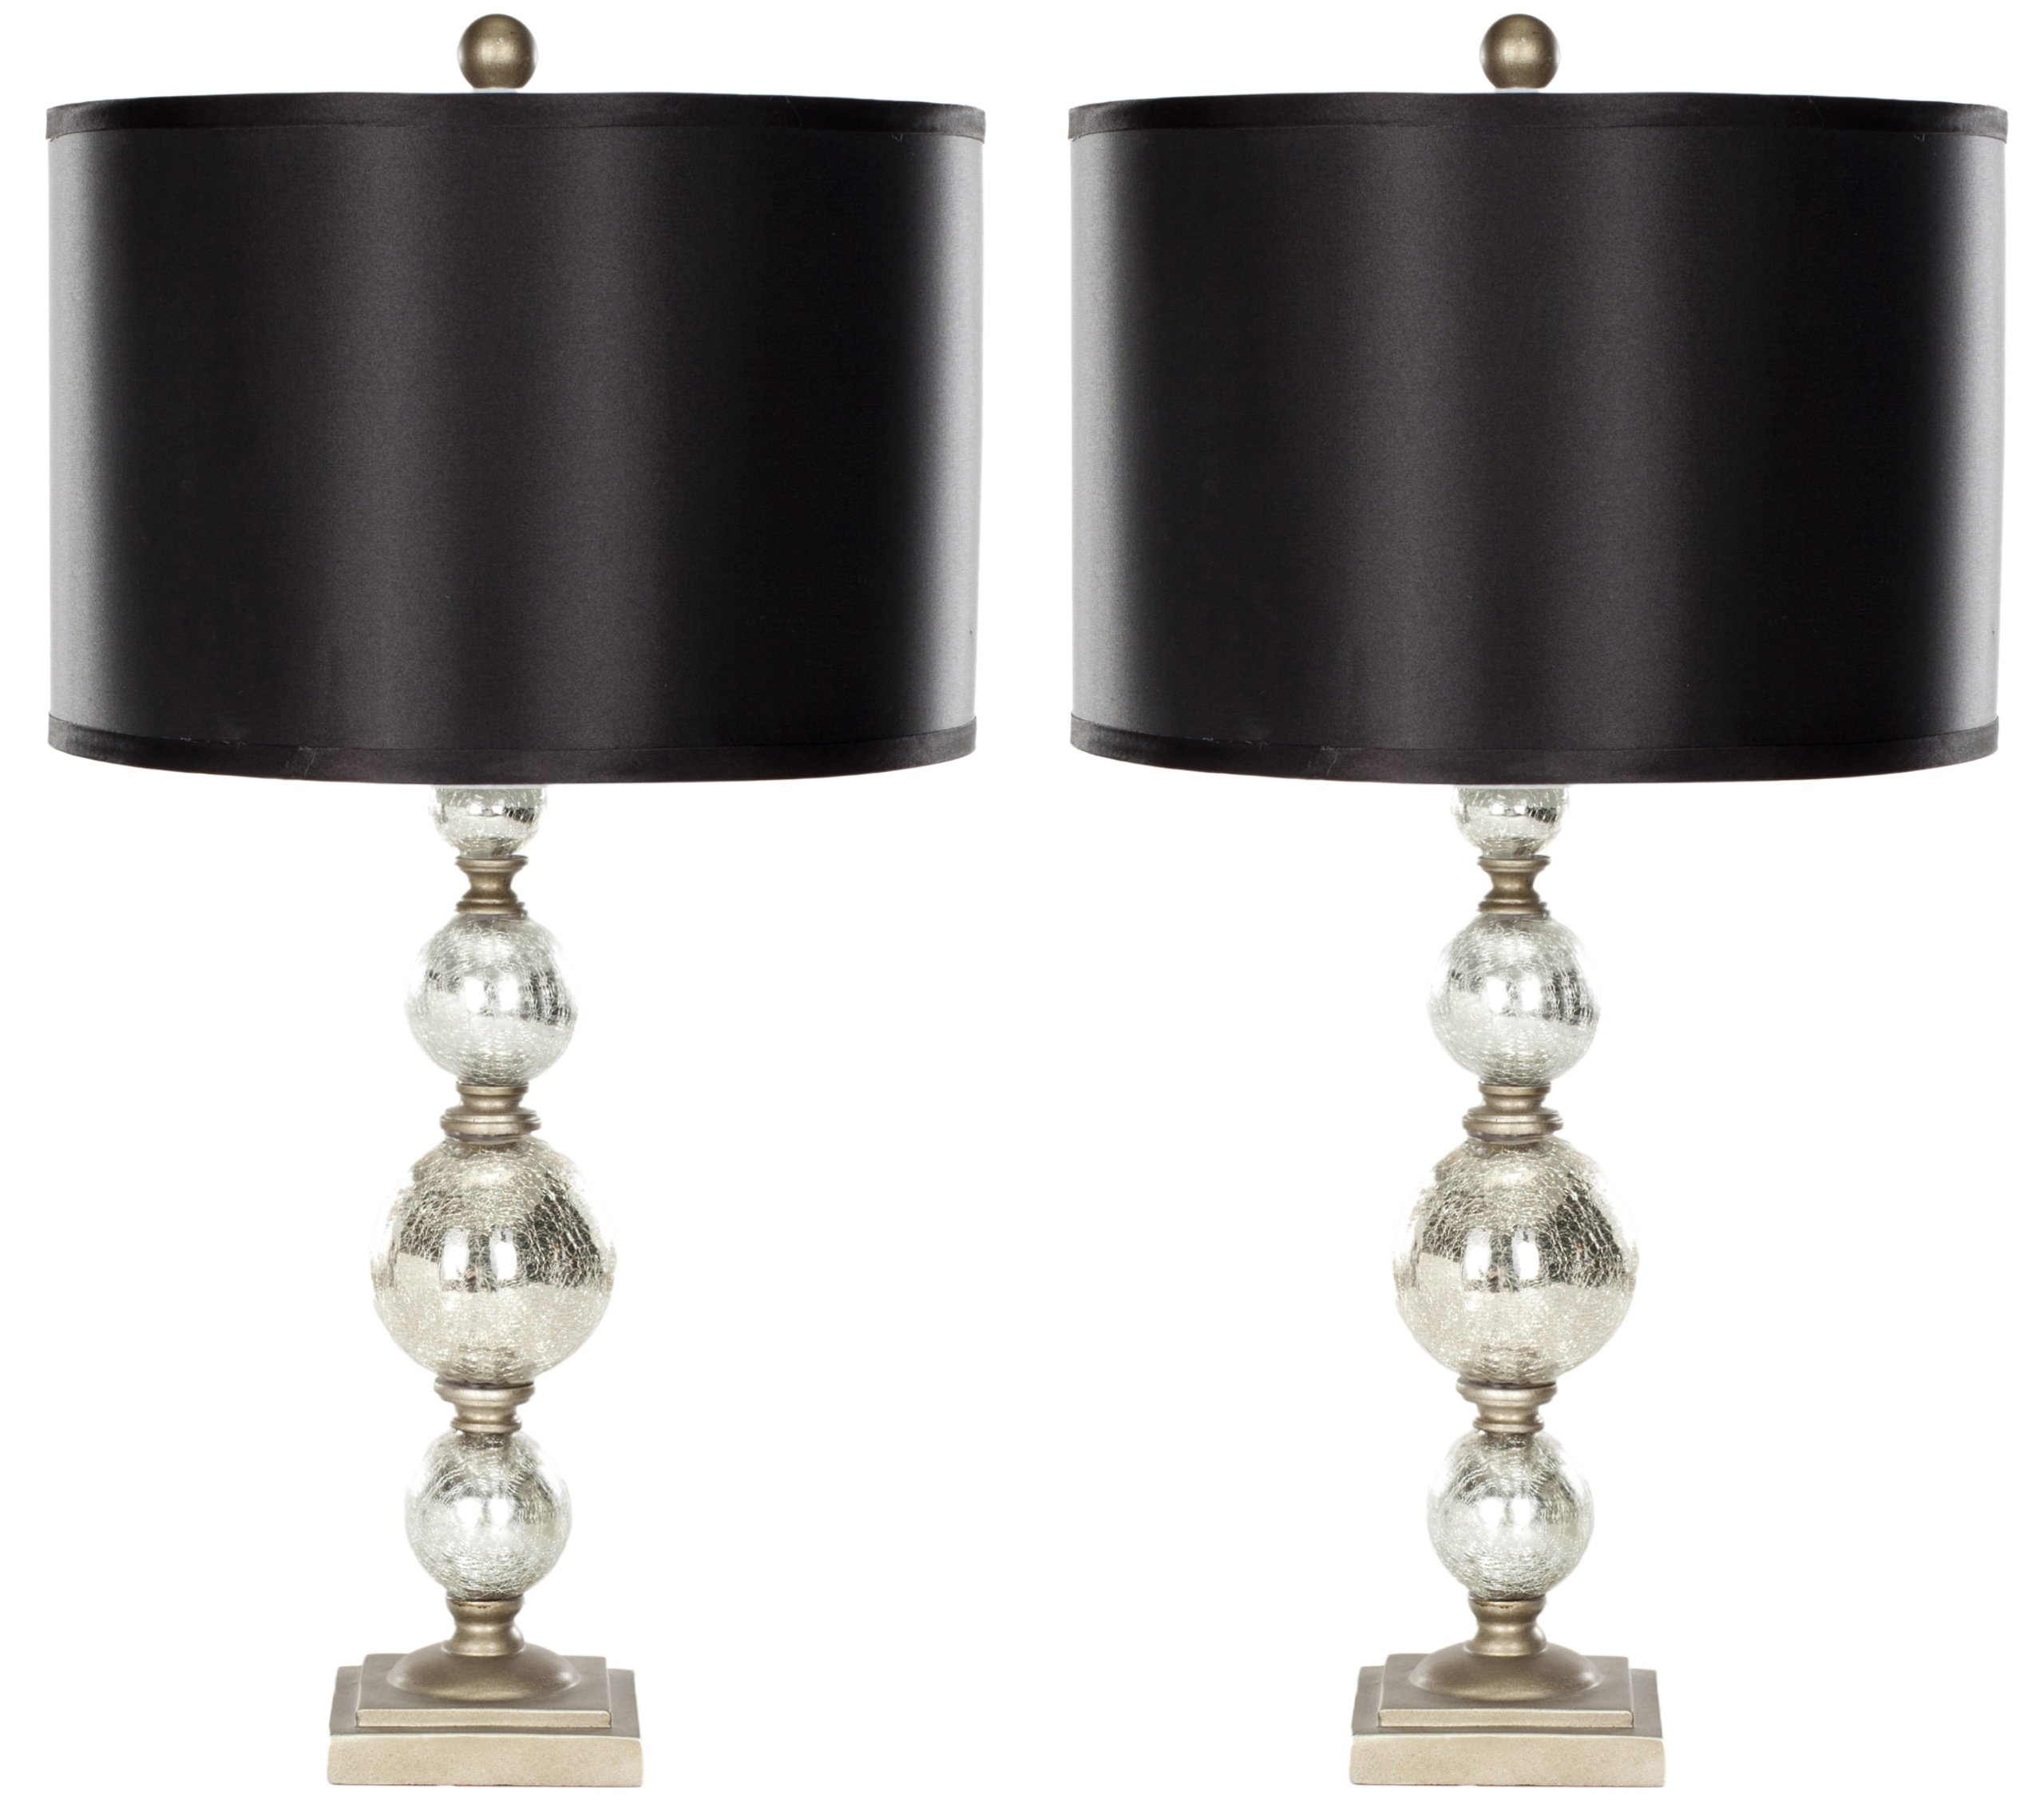 Safavieh Lighting Collection Nettie Mercury Glass 28-inch Table Lamp (Set of 2) by Safavieh